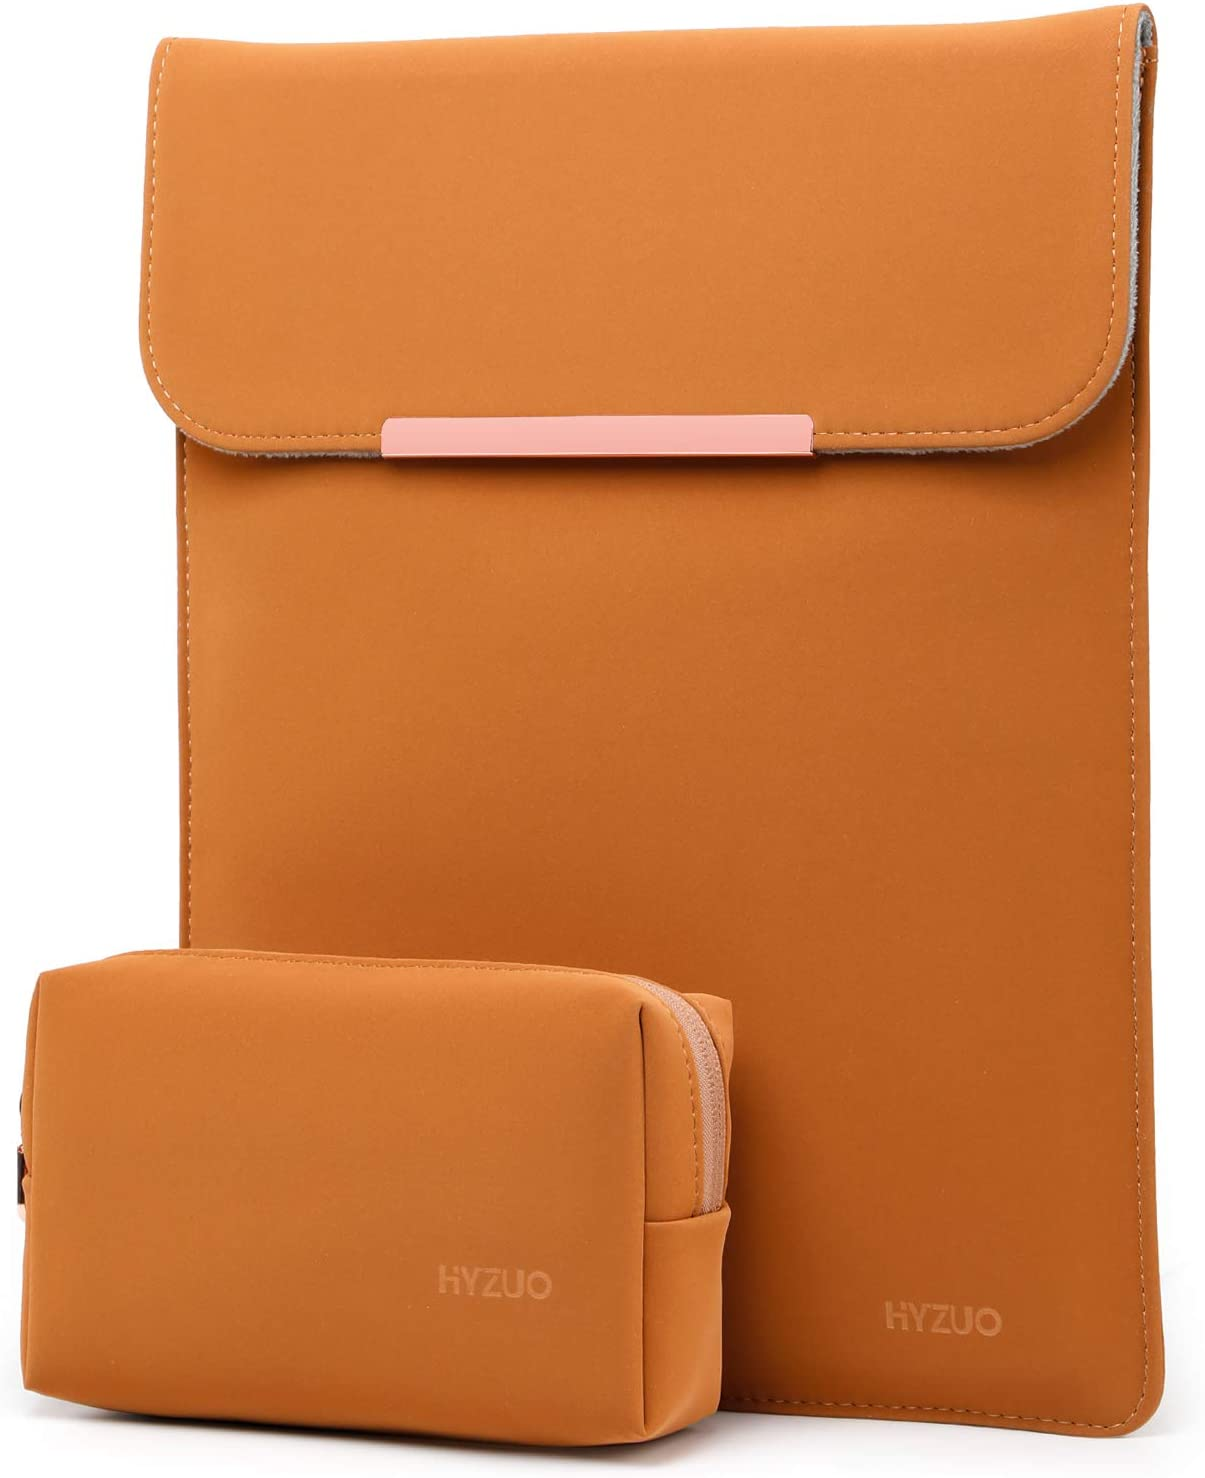 HYZUO 13 Inch Laptop Sleeve Case Compatible with 2020 2019 2018 MacBook Air 13 A2179 A1932/ MacBook Pro 13 2016-2020/ iPad Pro 12.9 2018 2020/ Dell XPS 13/ Surface Pro X 7 6 5 4 3, Brown